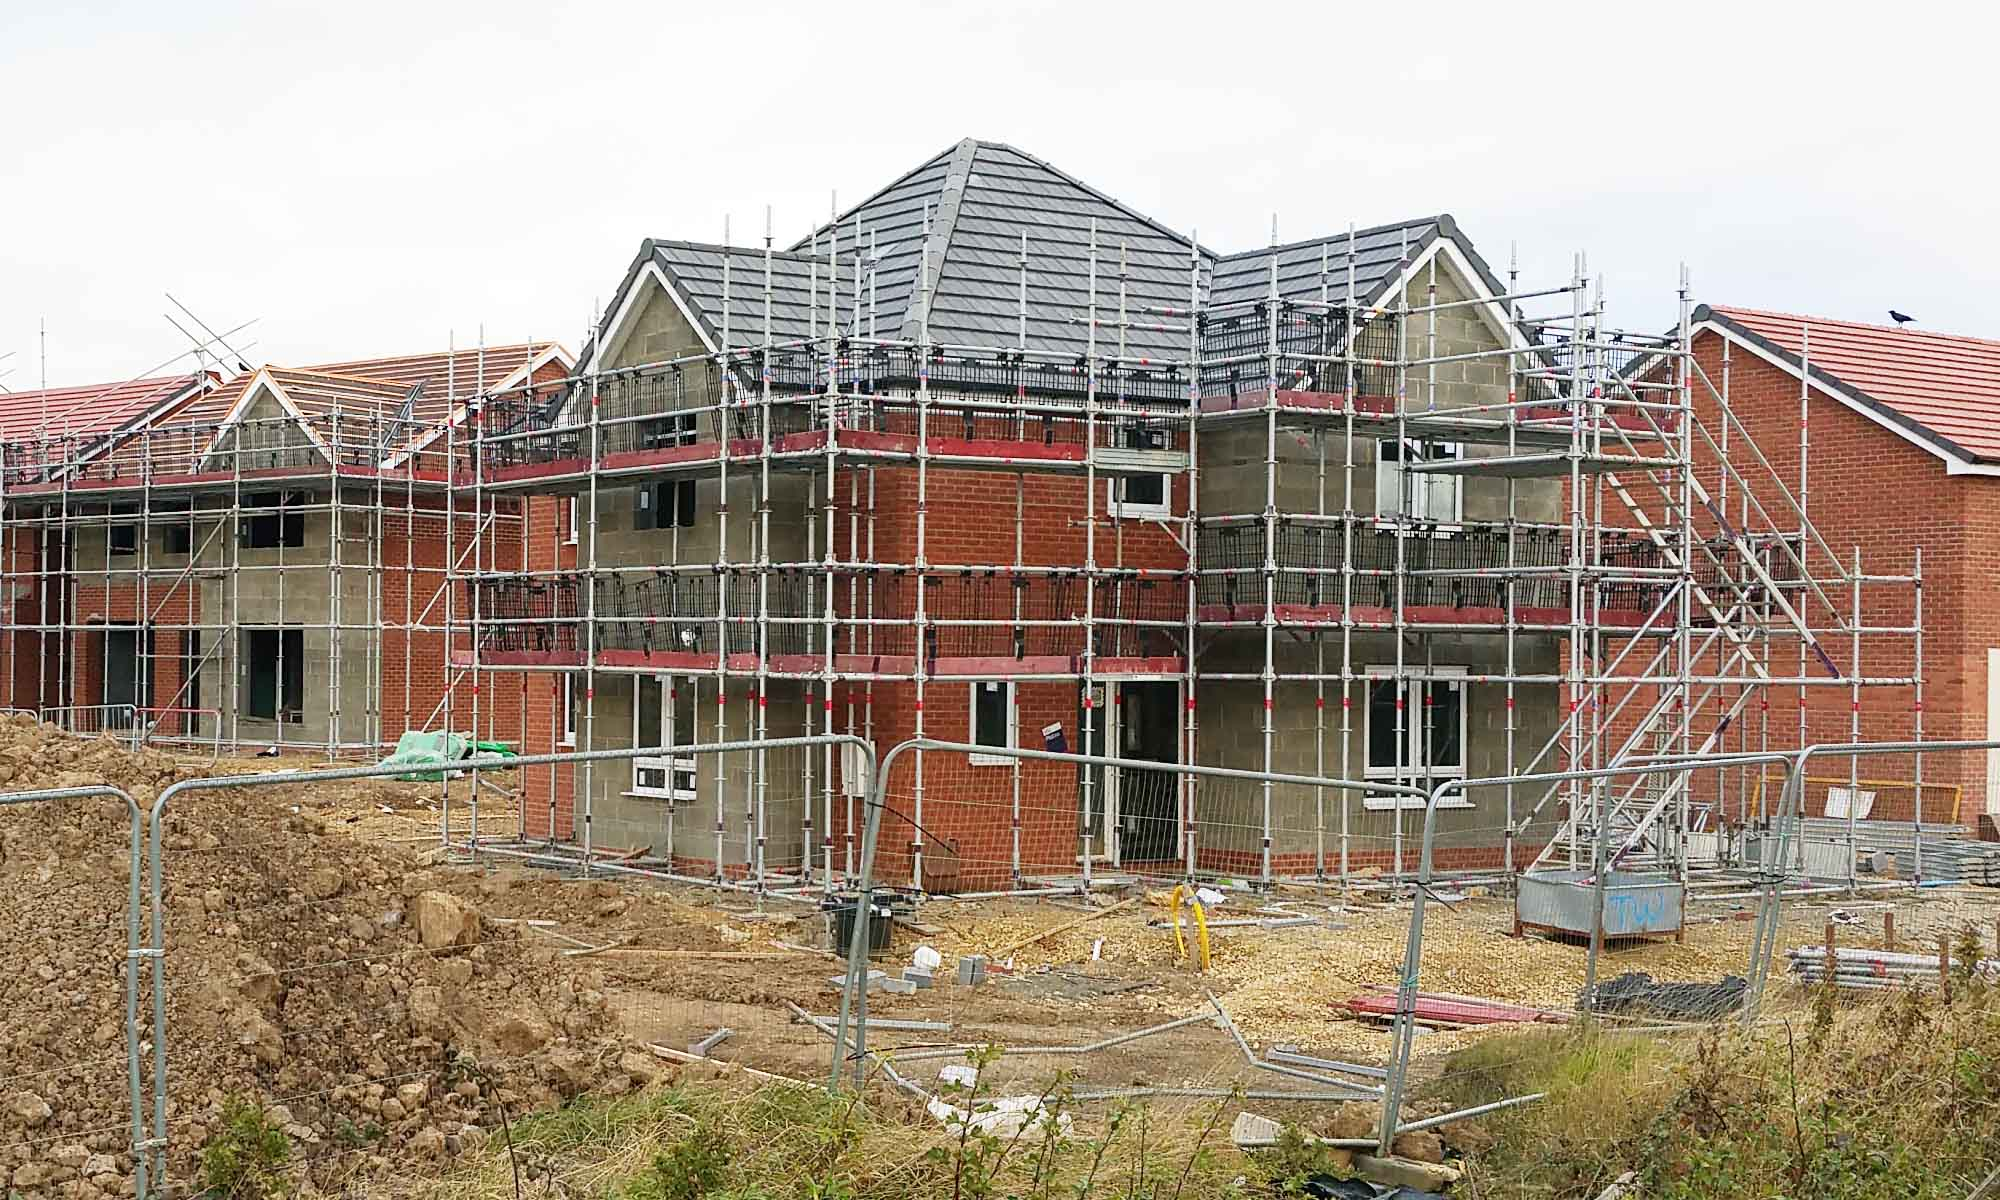 How New Houses are Built in the UK